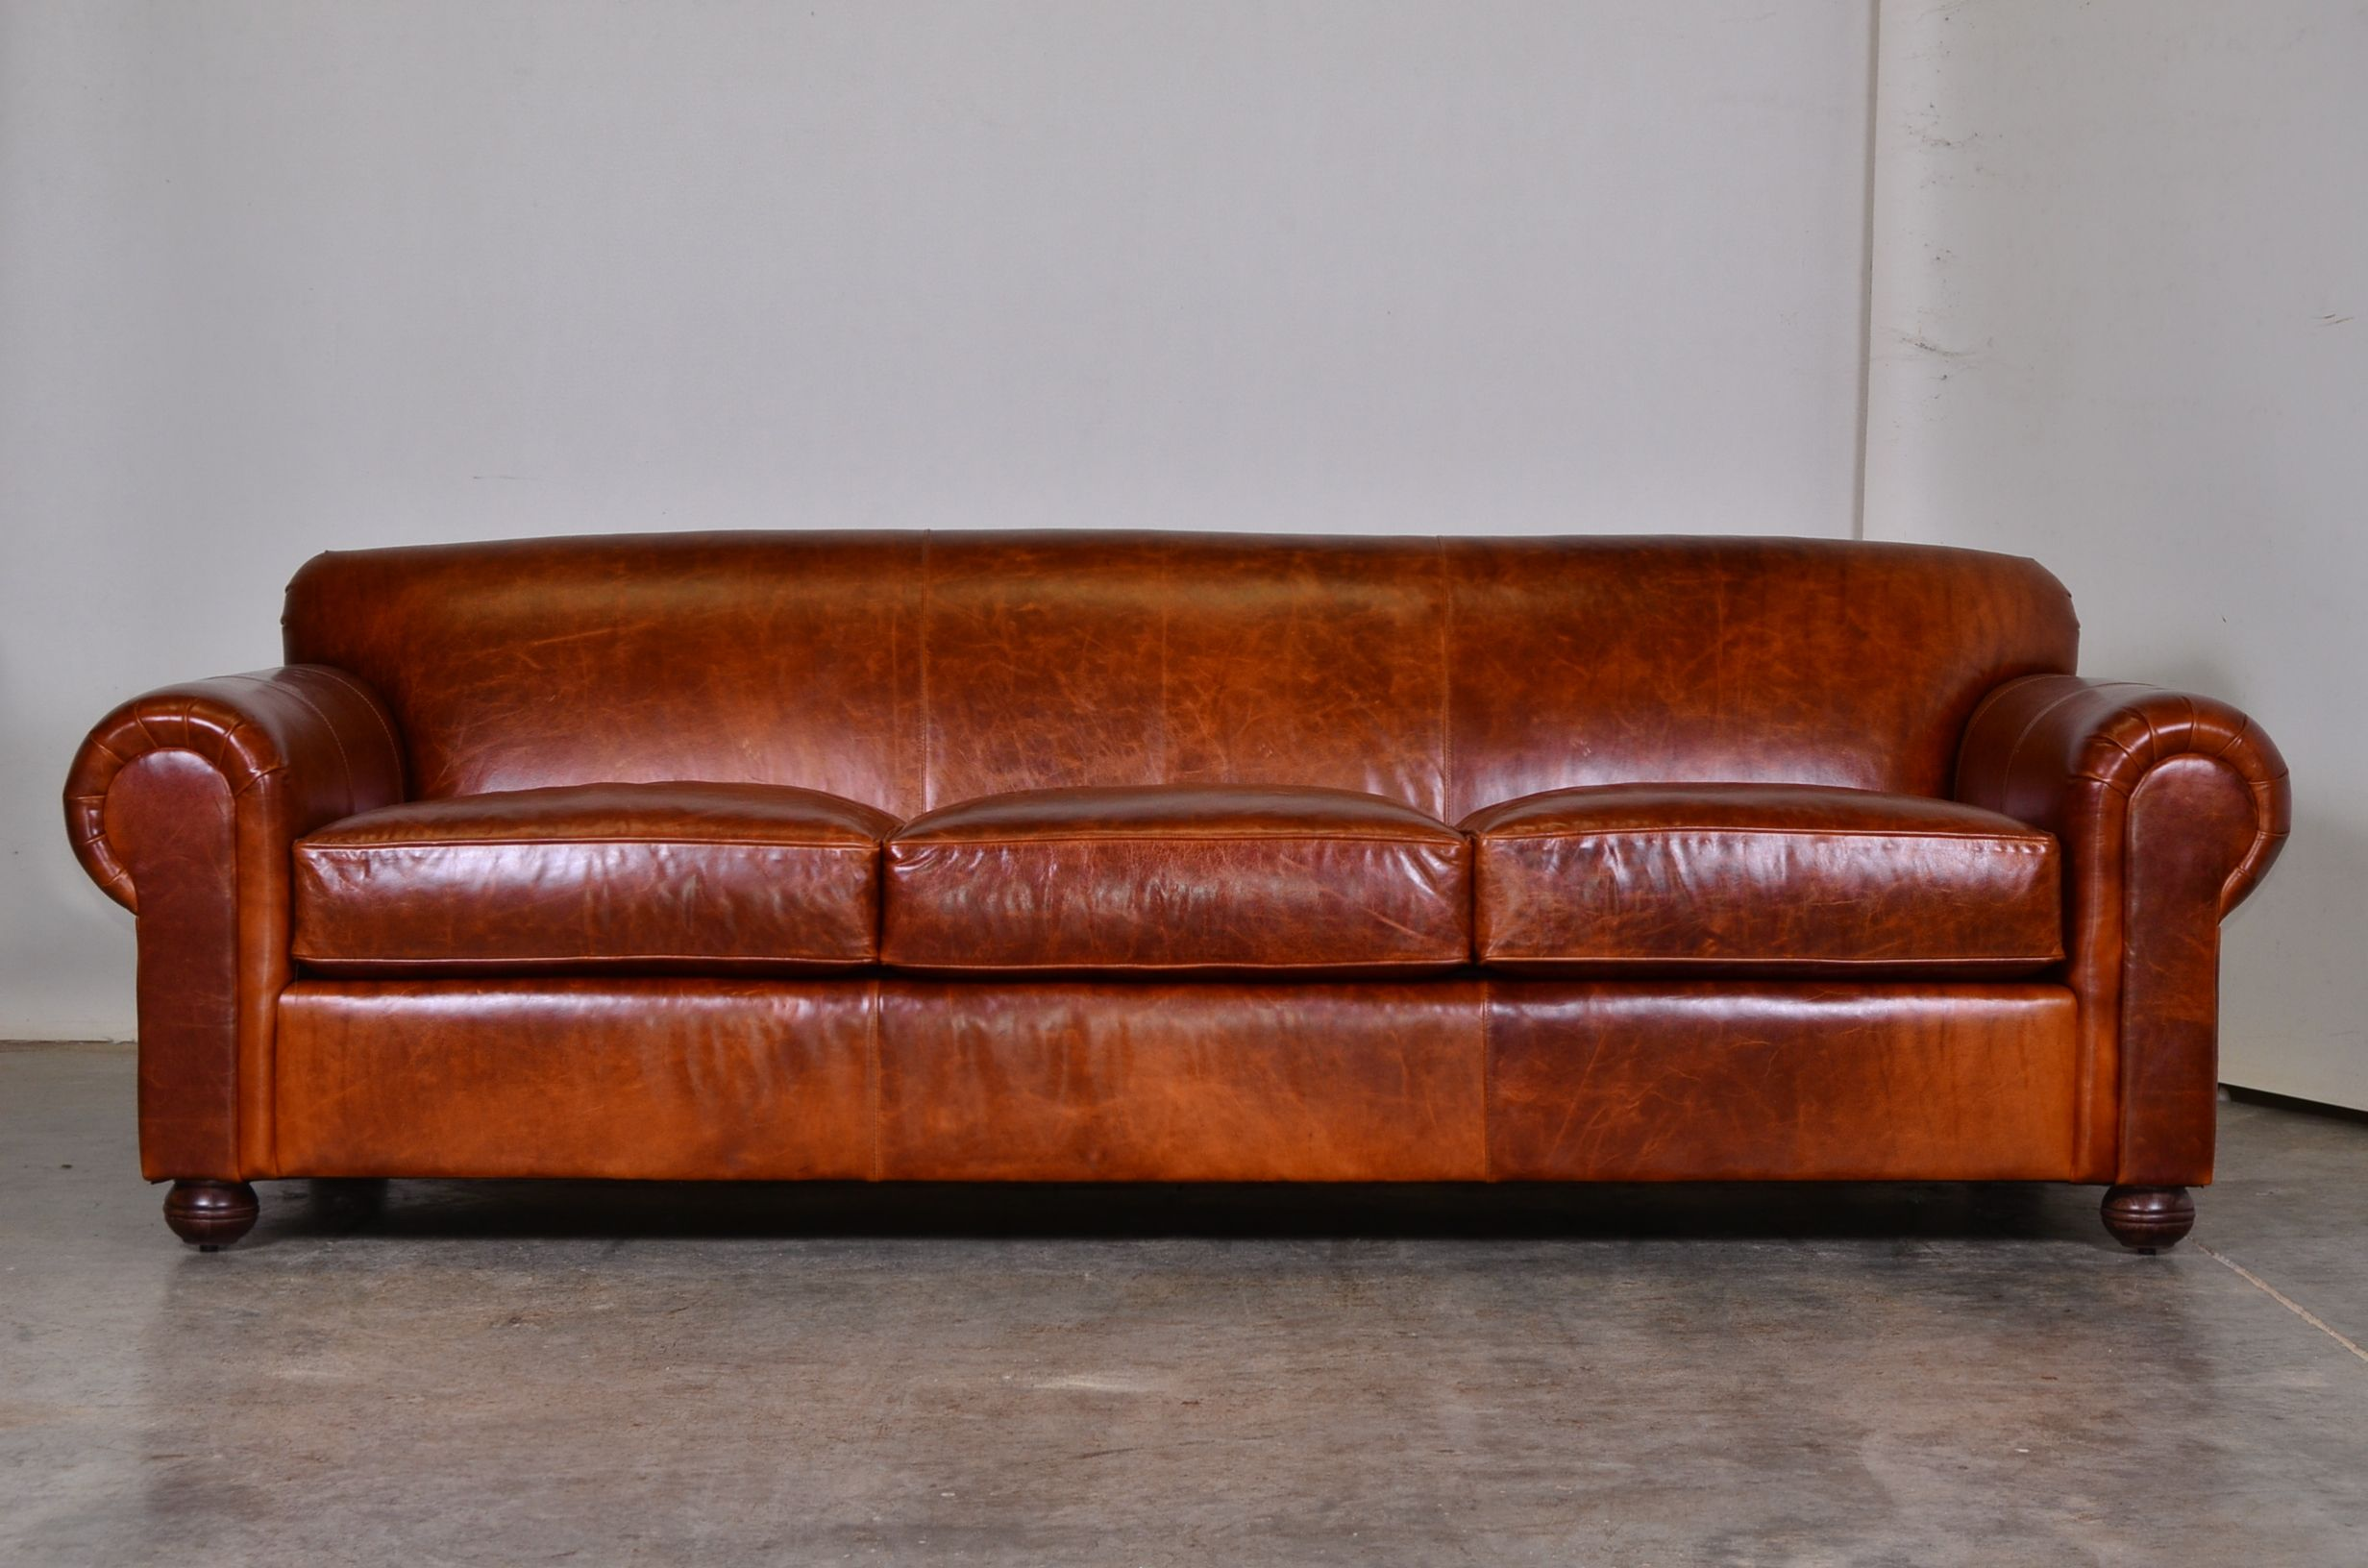 COCOCO Home Lexington Sofa with Hauser Nail Head Pattern